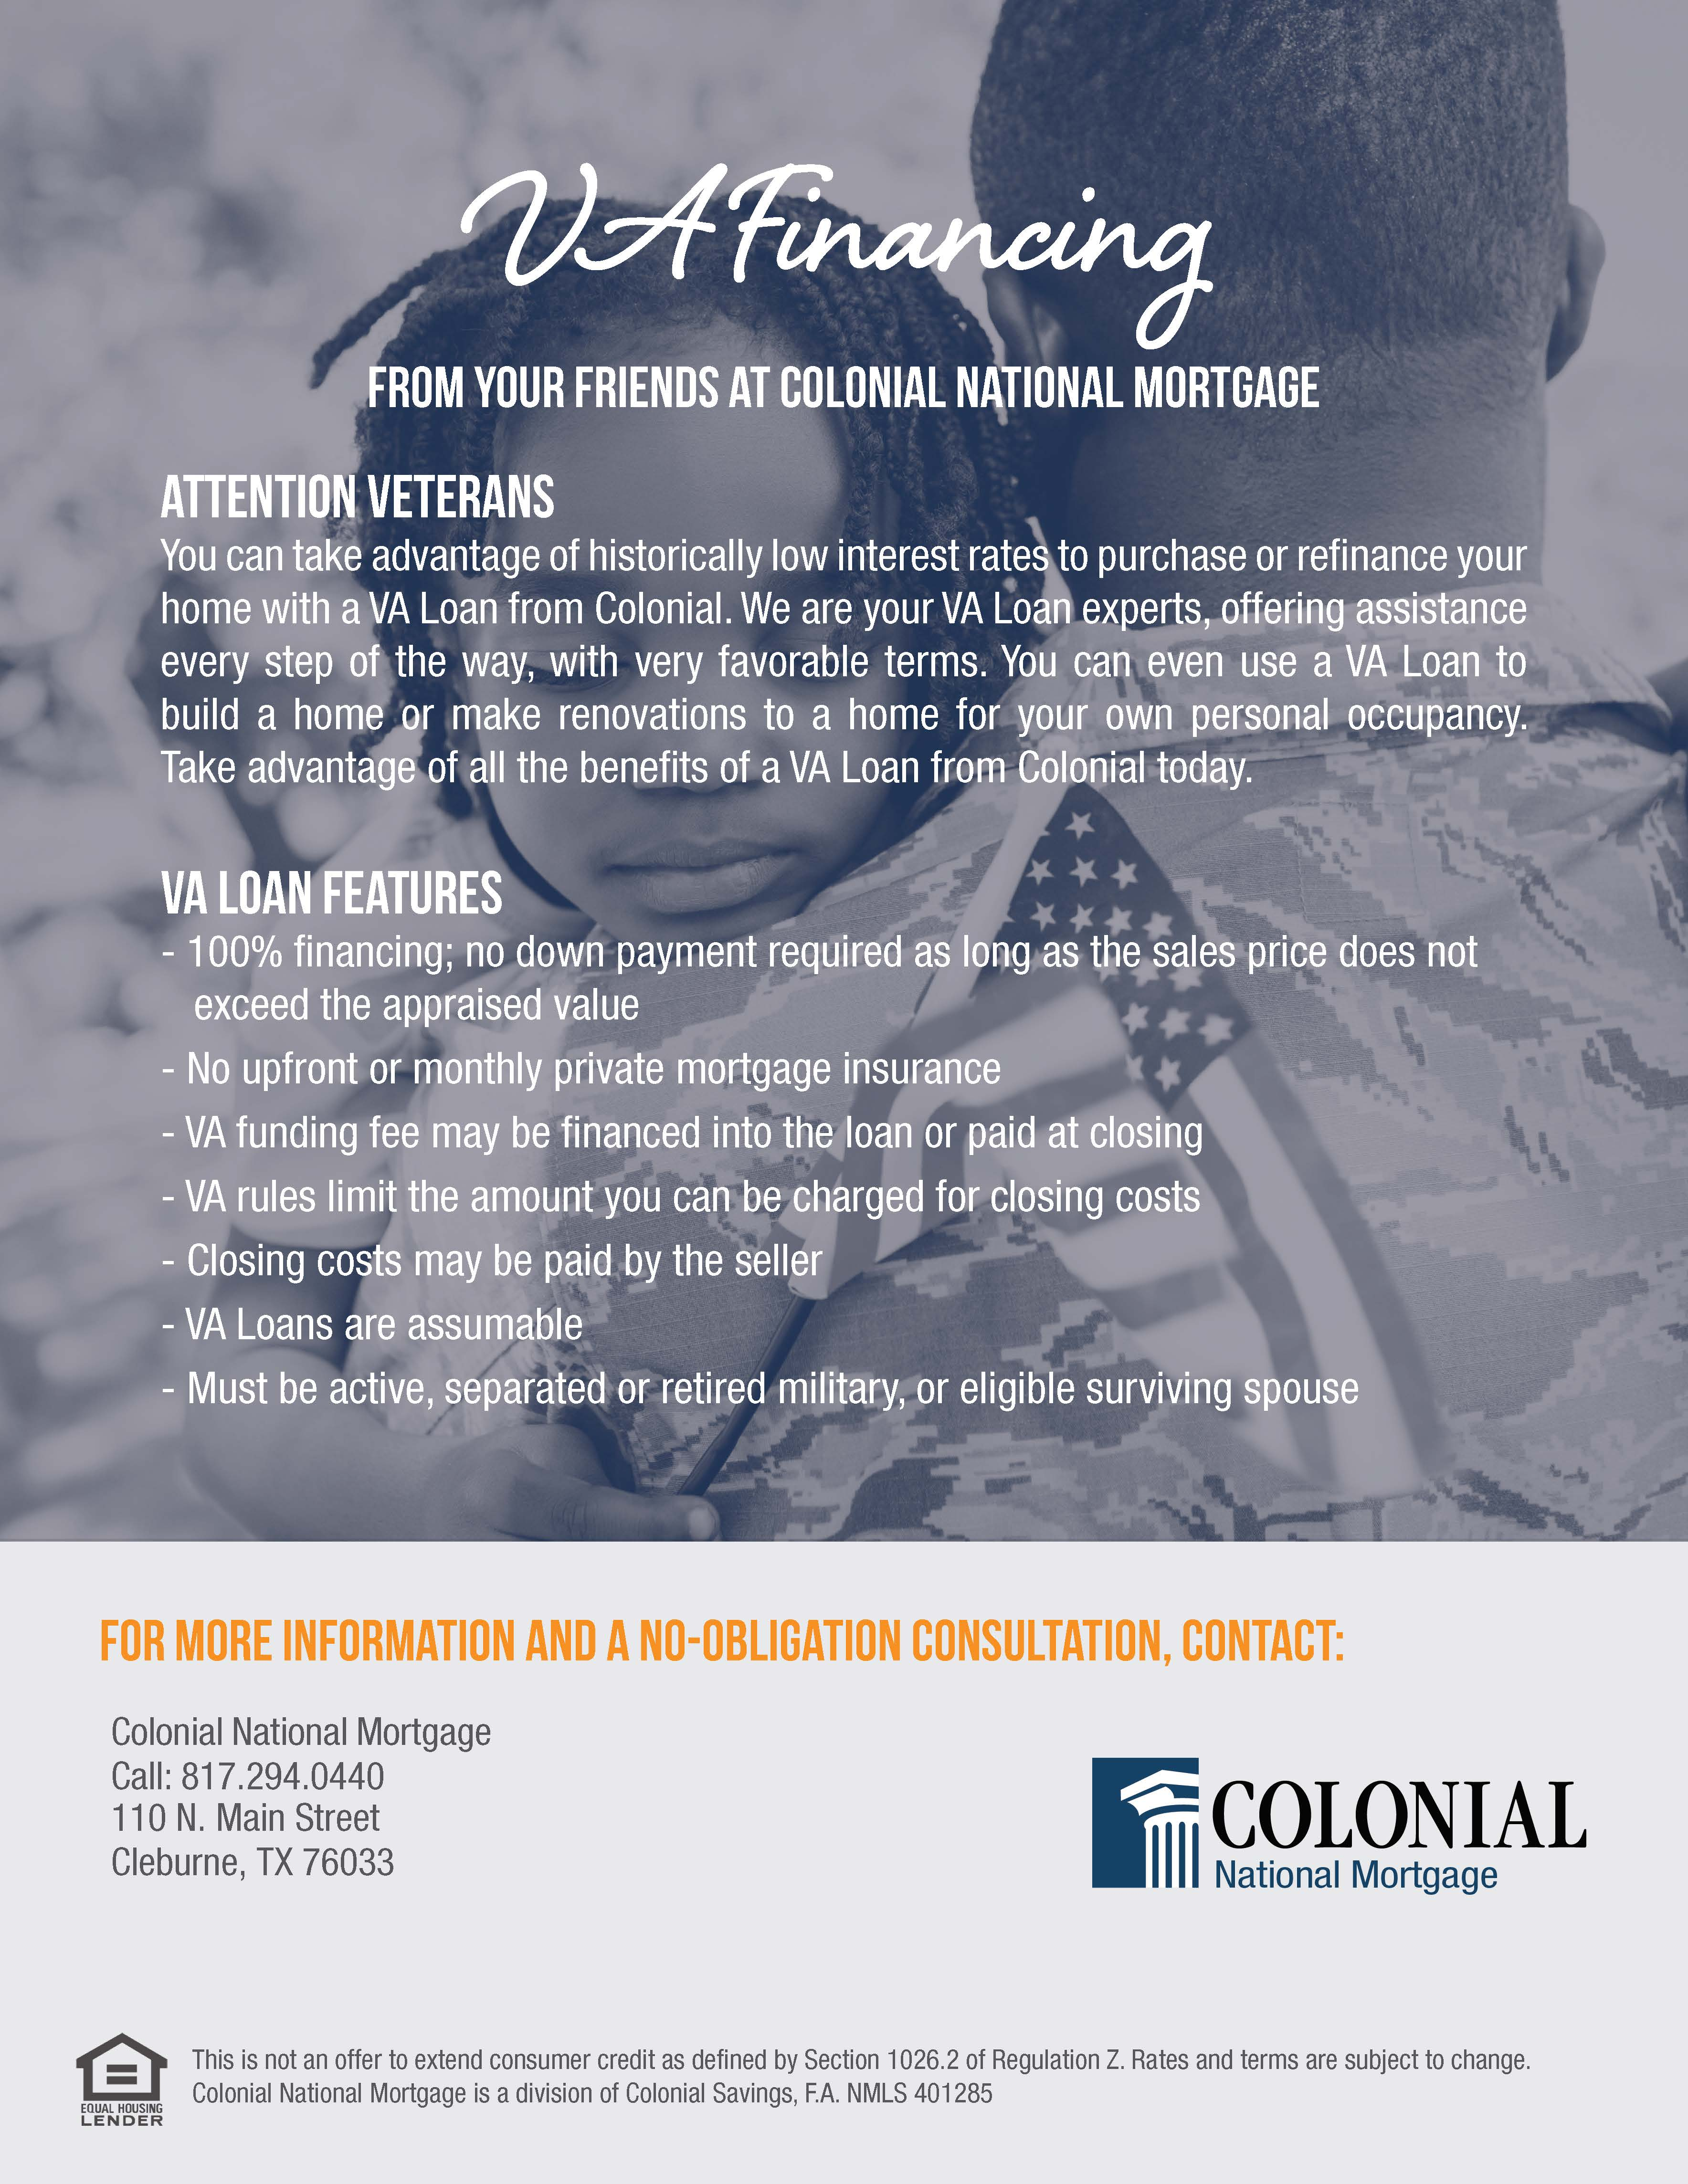 Colonial - Banking, Home Loans & Insurance image 4